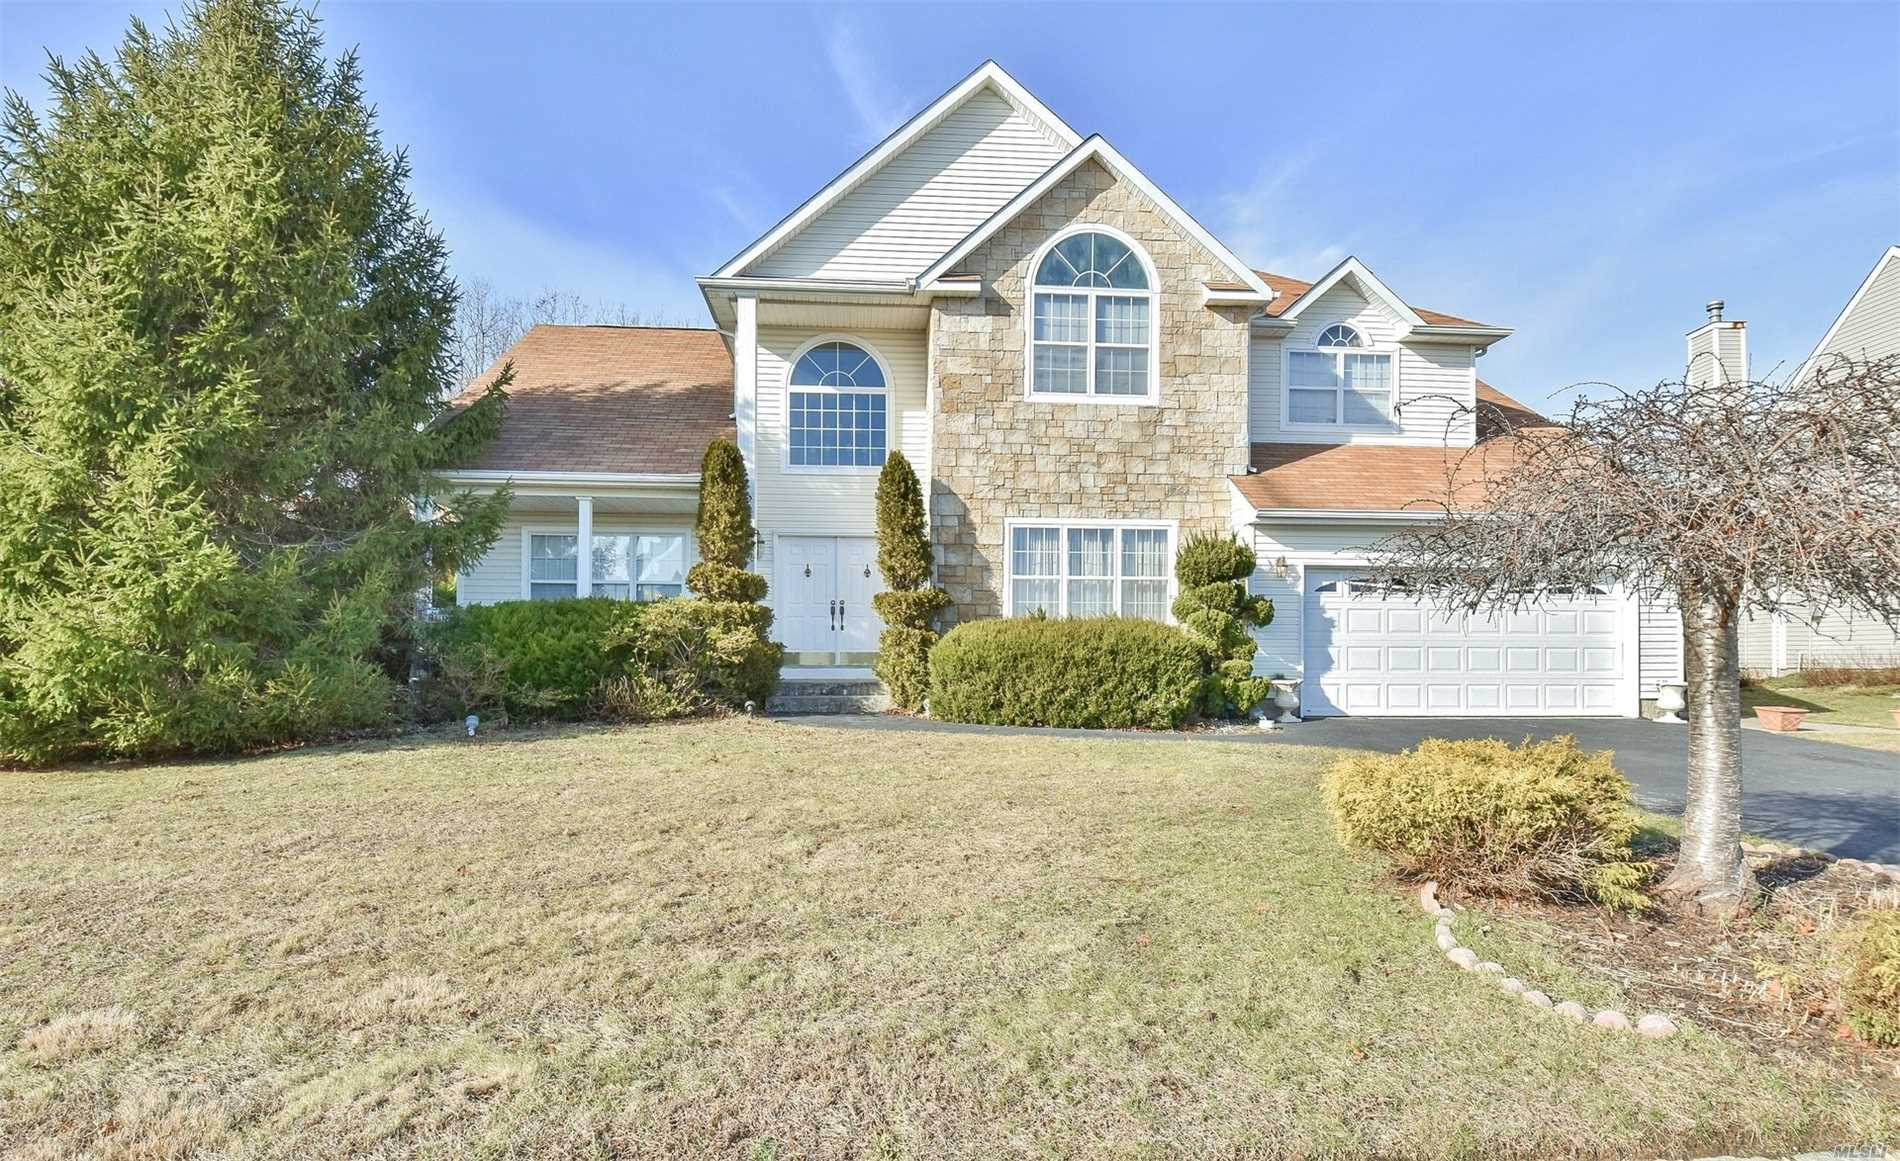 Gorgeous Center Hall Colonial Located In The Desirable Summerfield's Gated Community.Kitchen With Ci Opens To Great Room With Wood Burning Stone Fireplace, Master Bedroom With 2 Walk-In Closets And Full Bath With Spa Bath, Fully Finished Basement With Office Space. Gorgeous Spacious Backyard With Over-Sized Paver Patio & Extensive Brickwork. Cac & Gas Heat 2/Zones. Hoa $222. Gated Community Includes Pool, Playground, On Premise Daycare, Tennis & Basketball, Clubhouse W/Gym, . Taxes Being Grieved!